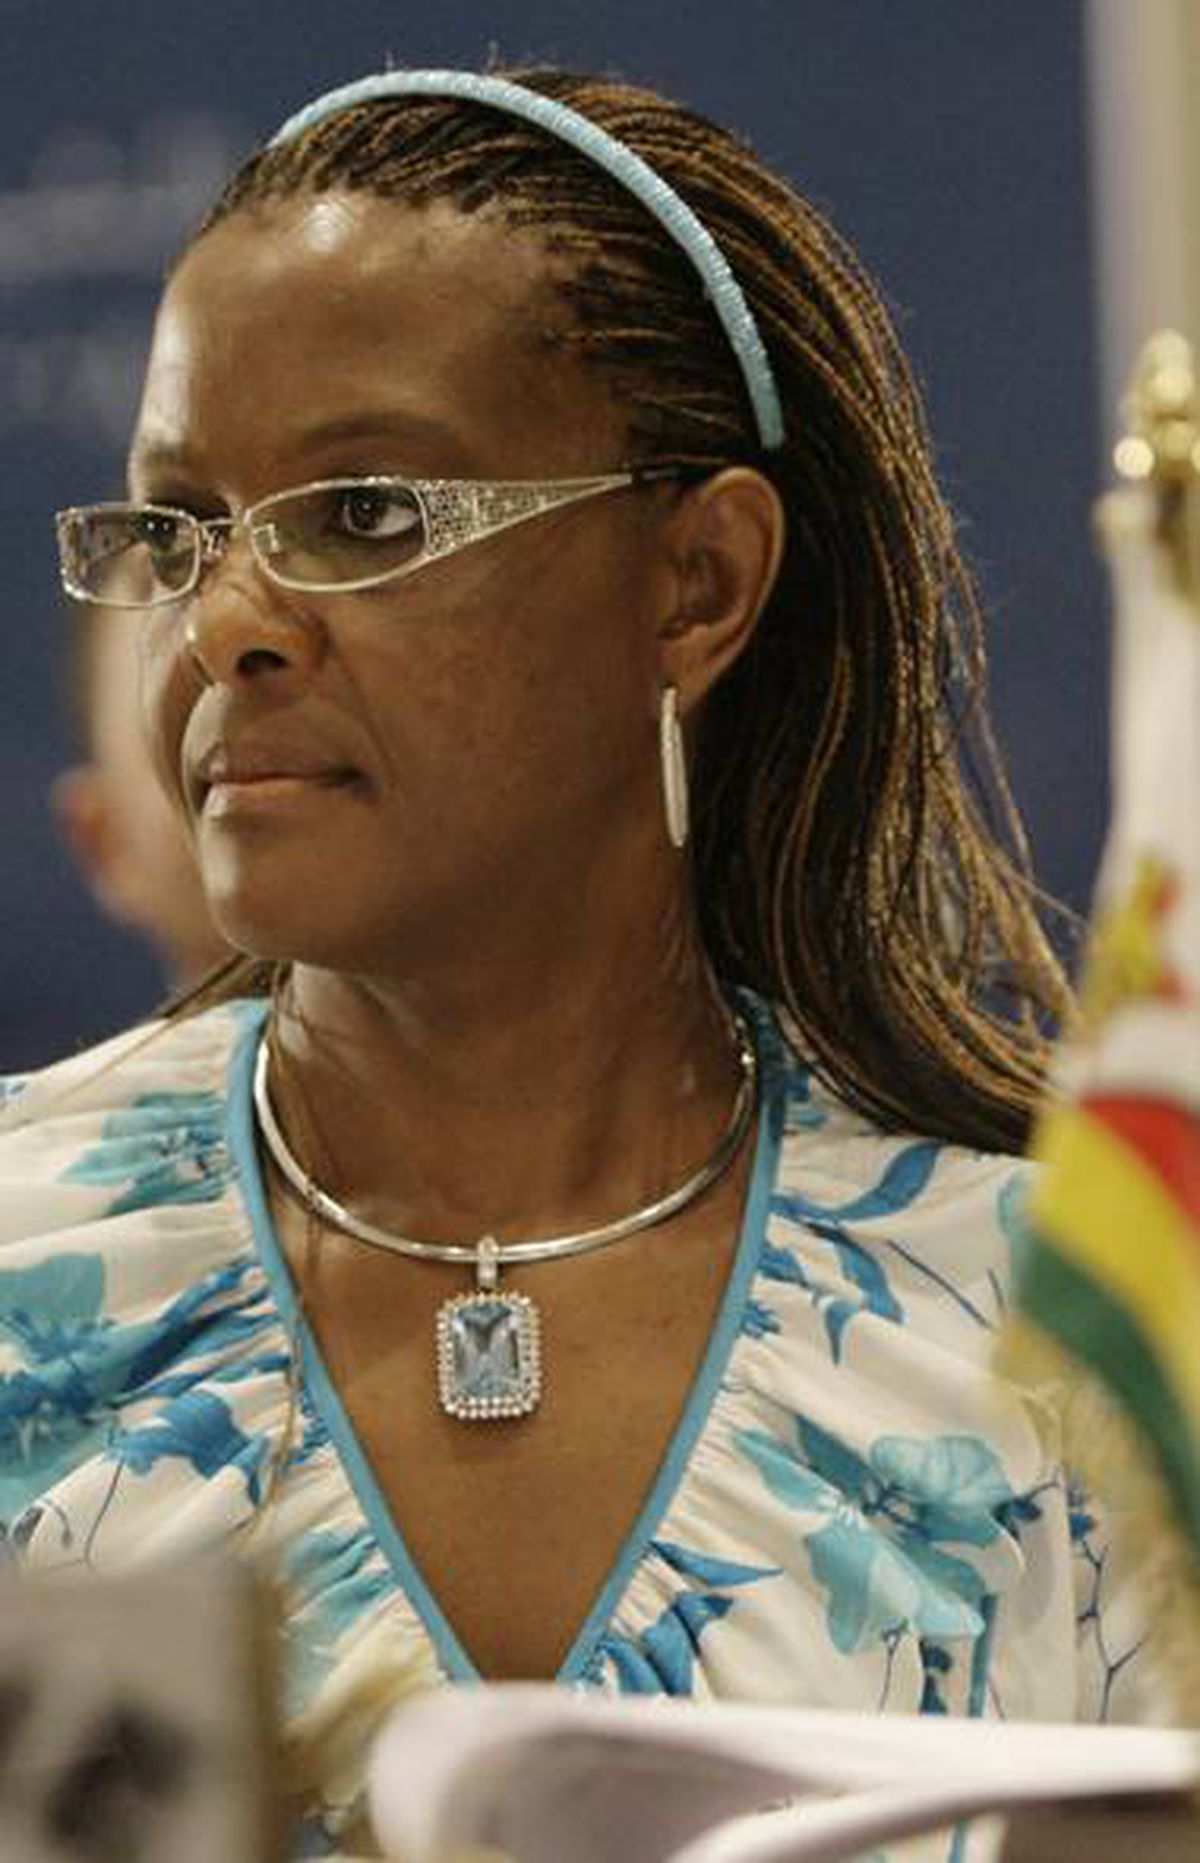 """ZIMBABWE: The illicit diamond trade in Zimbabwe has led to the murder of thousands, enriched those close to President Robert Mugabe and been financed in part by the central bank, according to leaked U.S. documents. """"In a country filled with corrupt schemes, the diamond business in Zimbabwe is one of the dirtiest,"""" according to a classified document from November, 2008, from the U.S. embassy in the country, released this week on WikiLeaks. In the classified documents that date from before a unity government came to power, U.S. diplomats cite a well established British mining executive as saying those close to Mr. Mugabe, including his wife, Grace Mugabe, """"have been extracting tremendous profits"""" from the Chiadzwa mine in the eastern part of the country."""